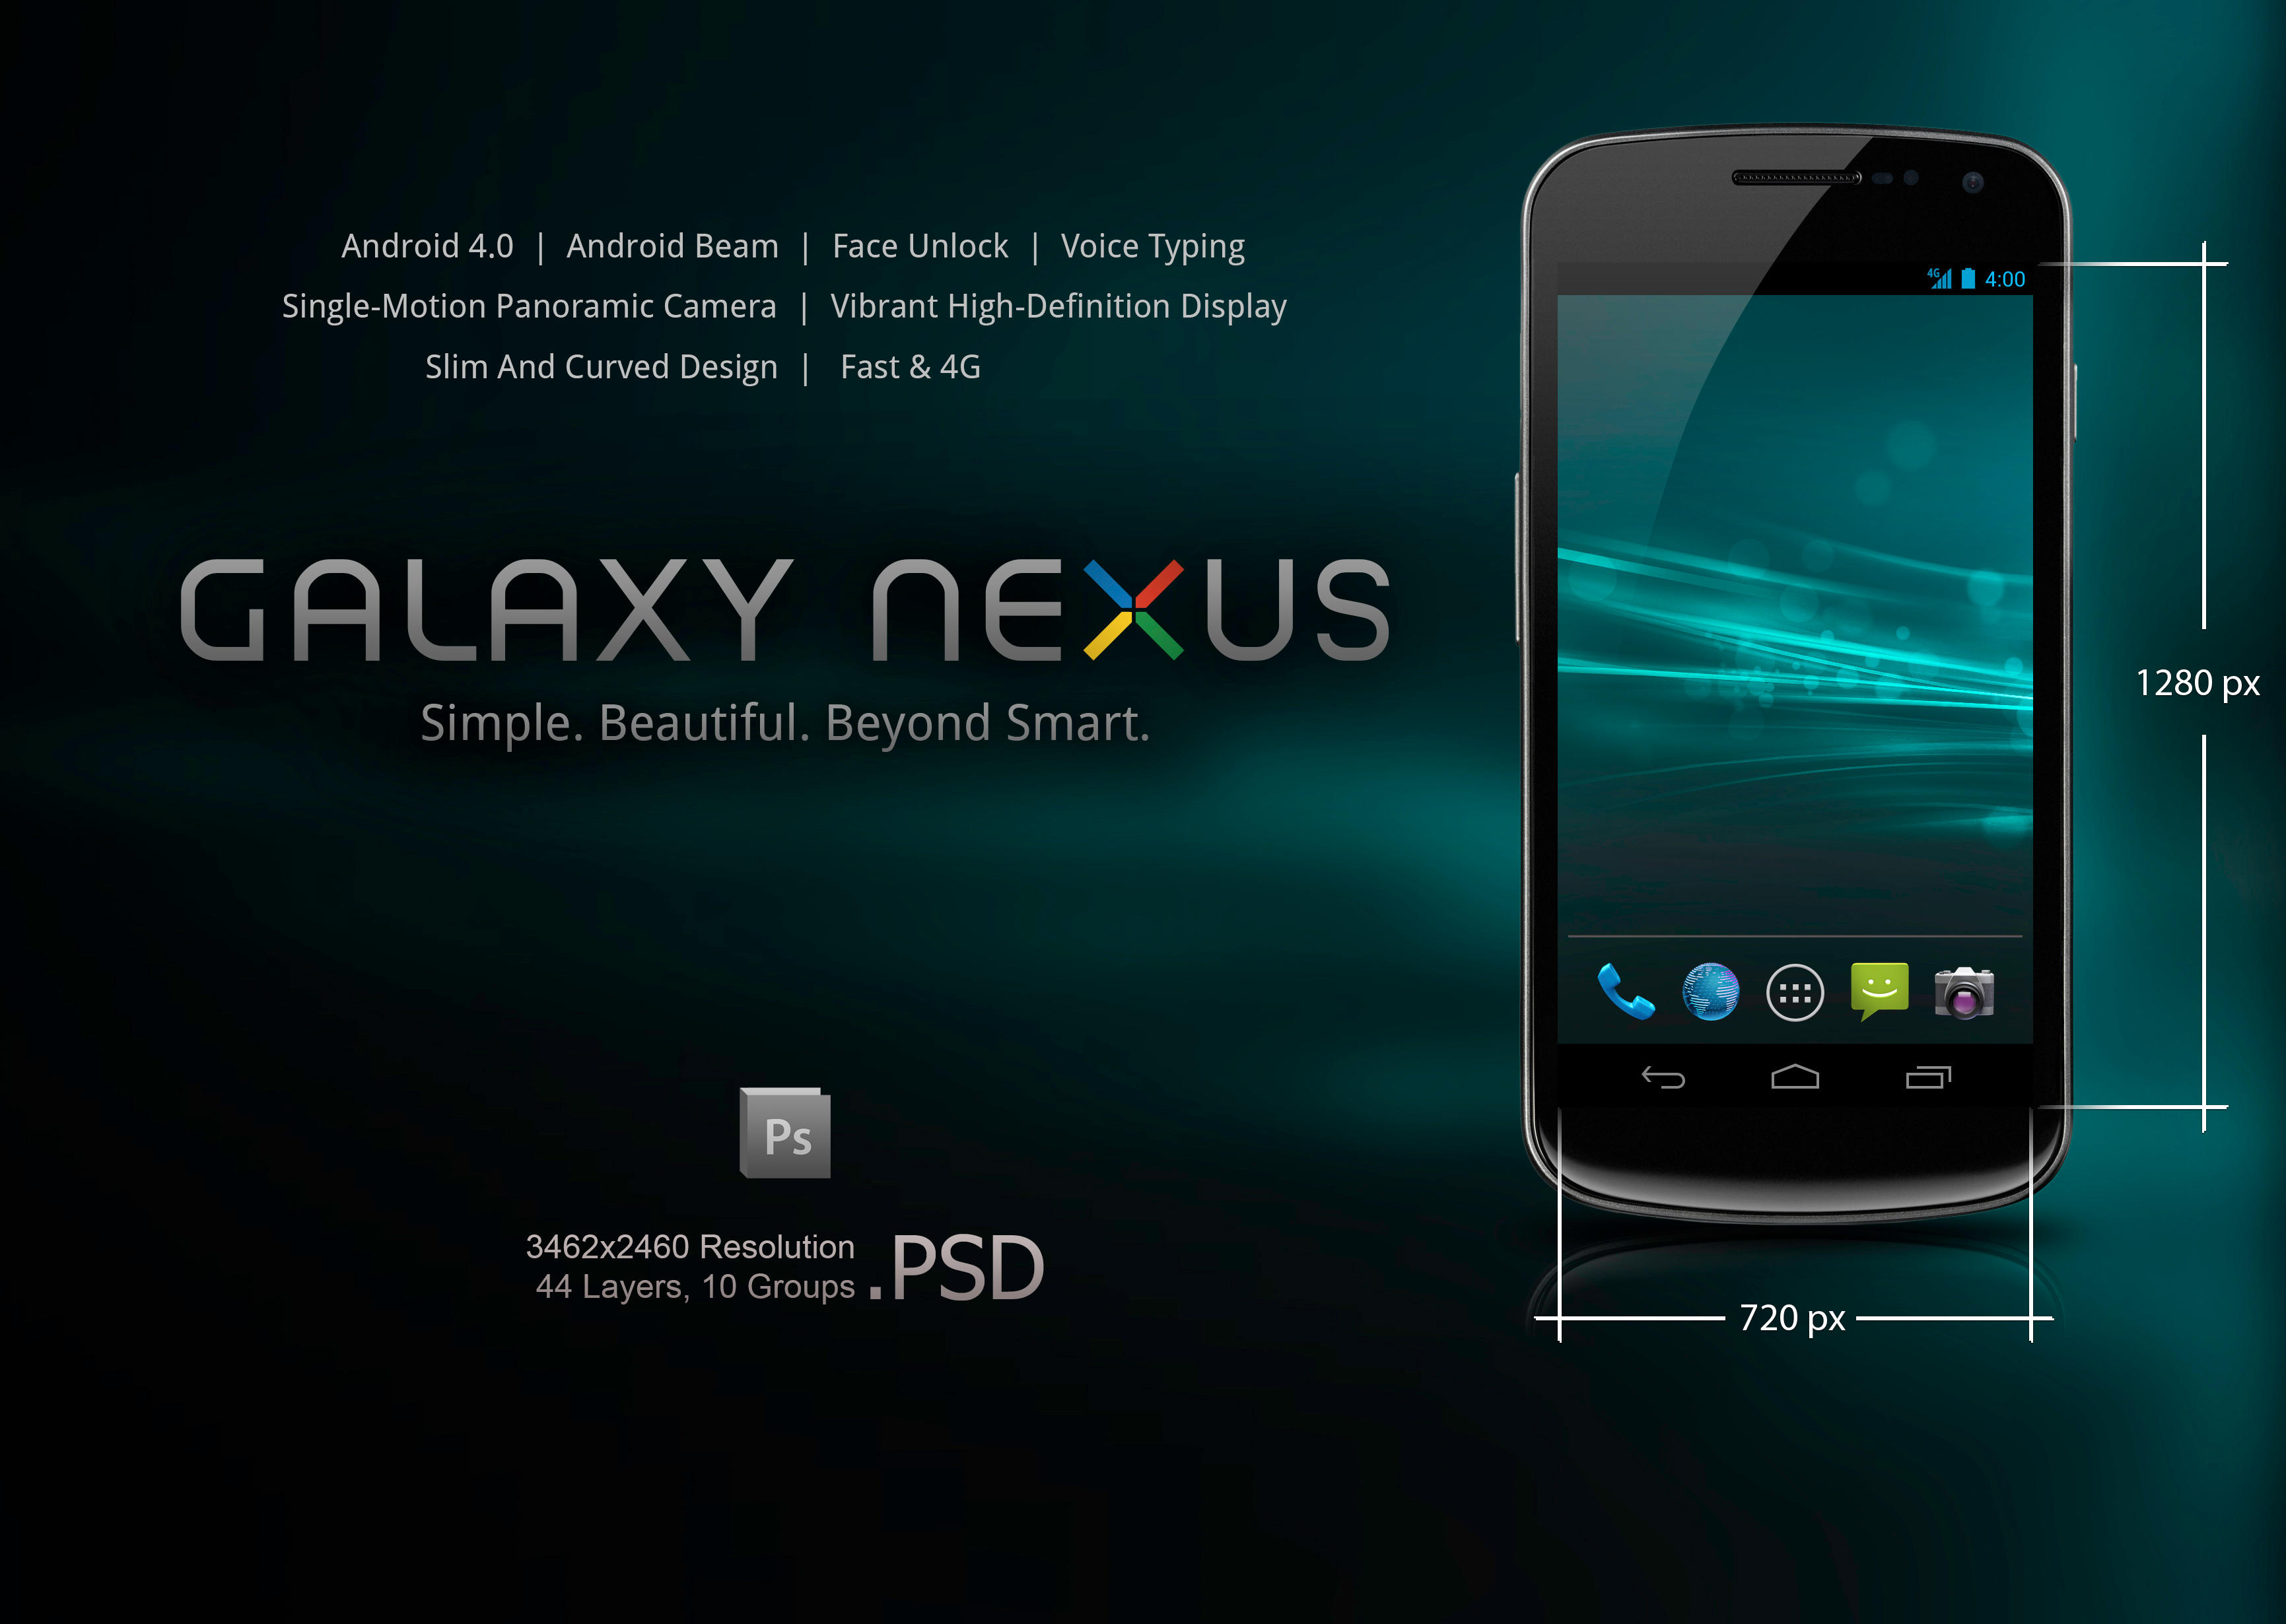 galaxy nexus 10 features of academic writing